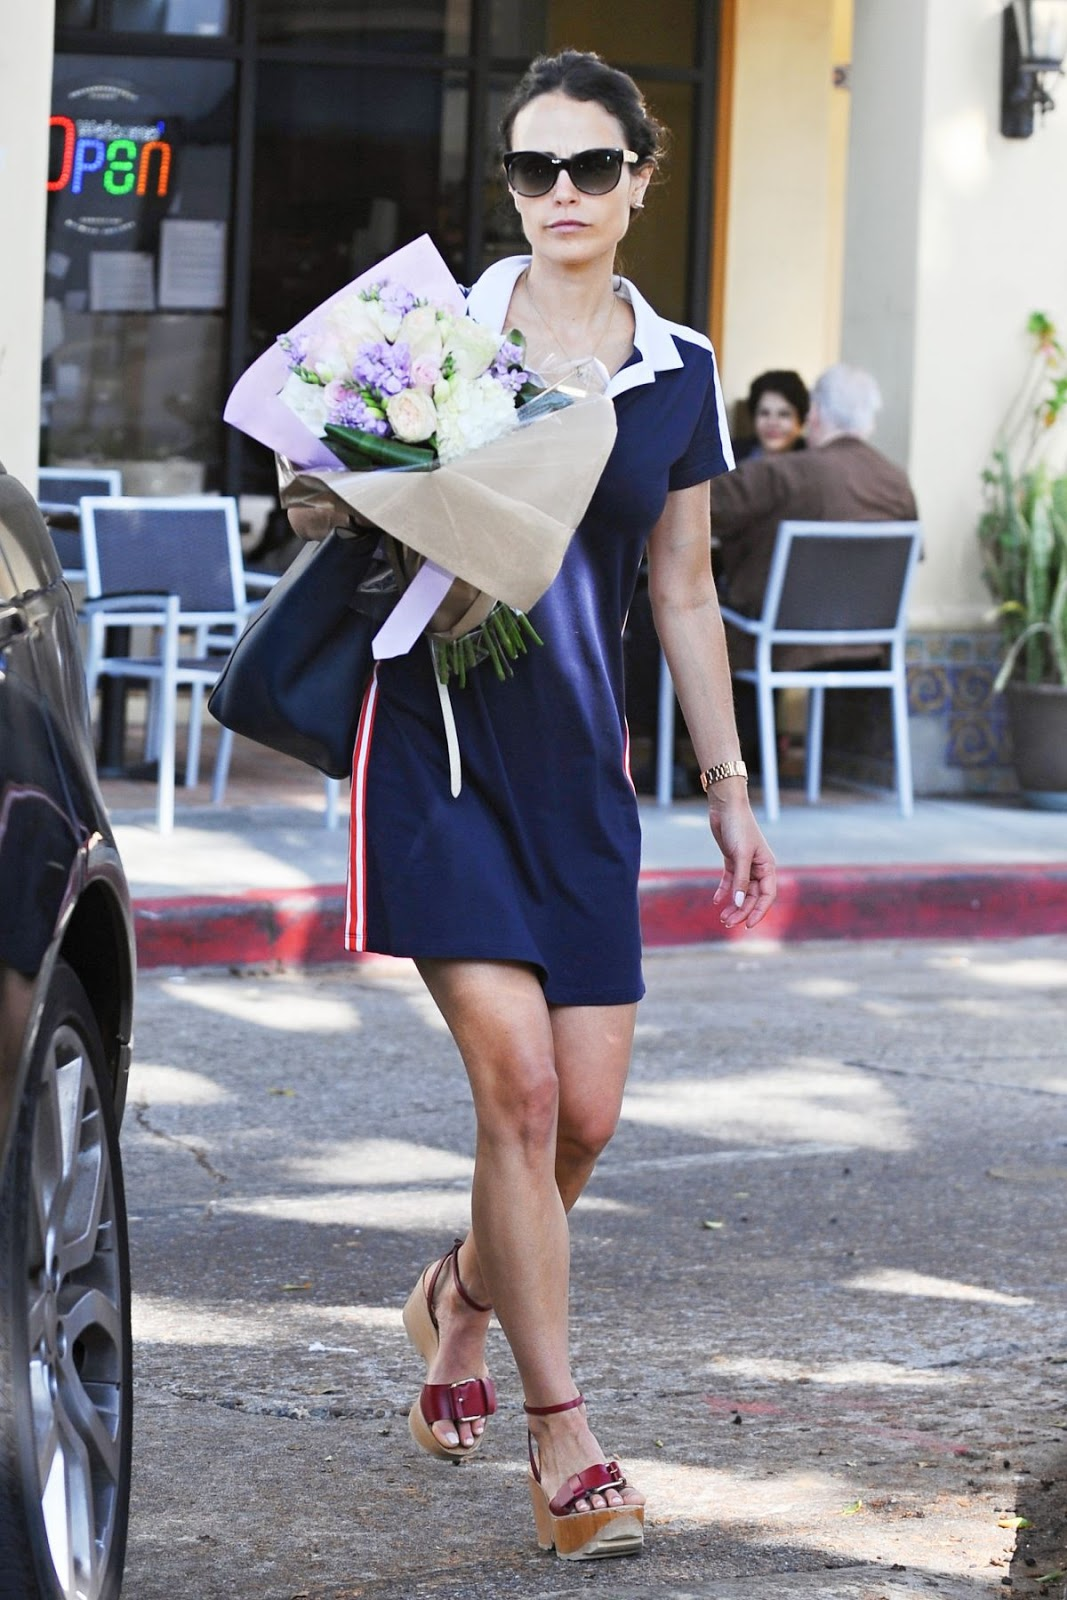 Photos of 'Fast and Furious 8' actress Jordana Brewster out Shopping for Flowers in Los Angeles